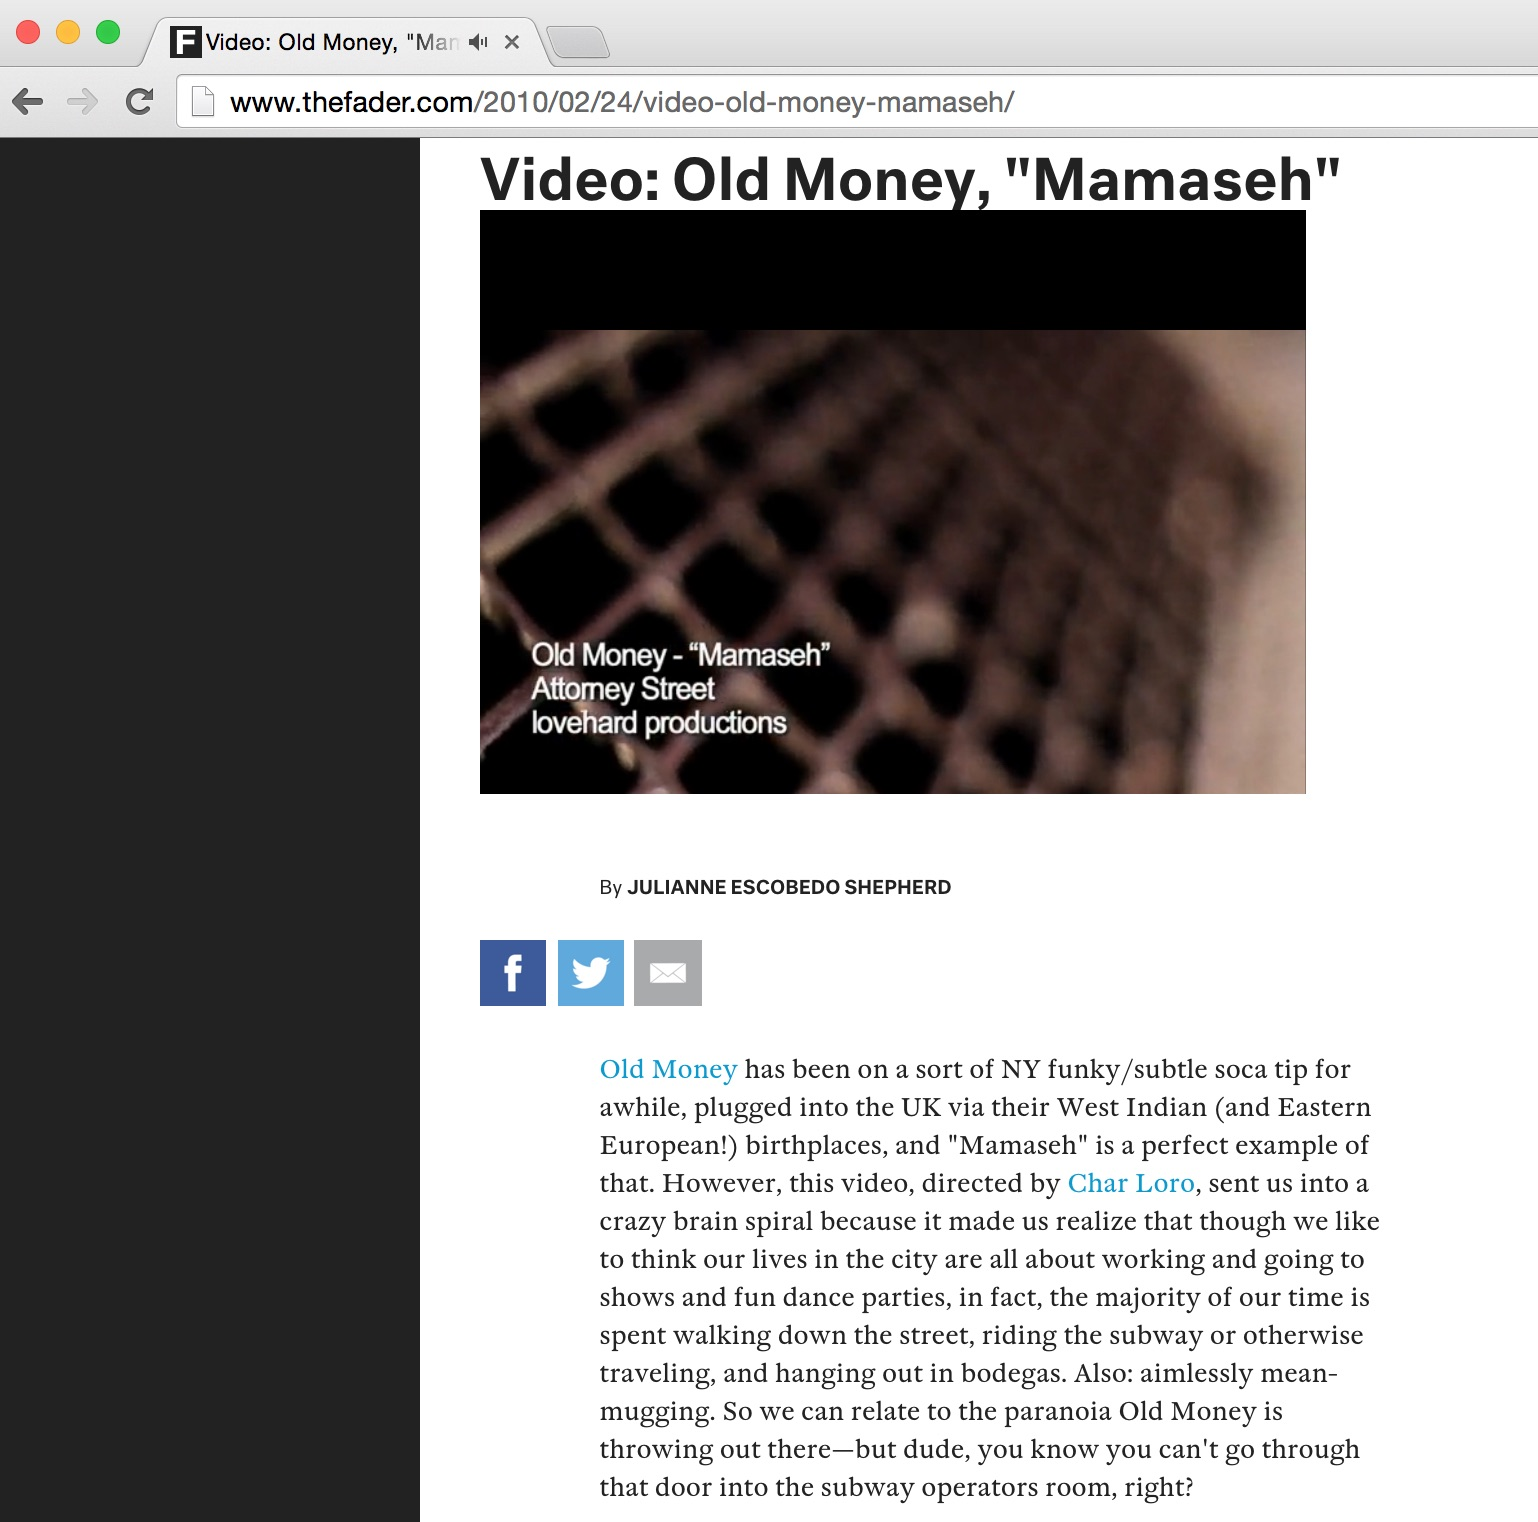 7 The Fader magazine OldMoney video release MAMASEH